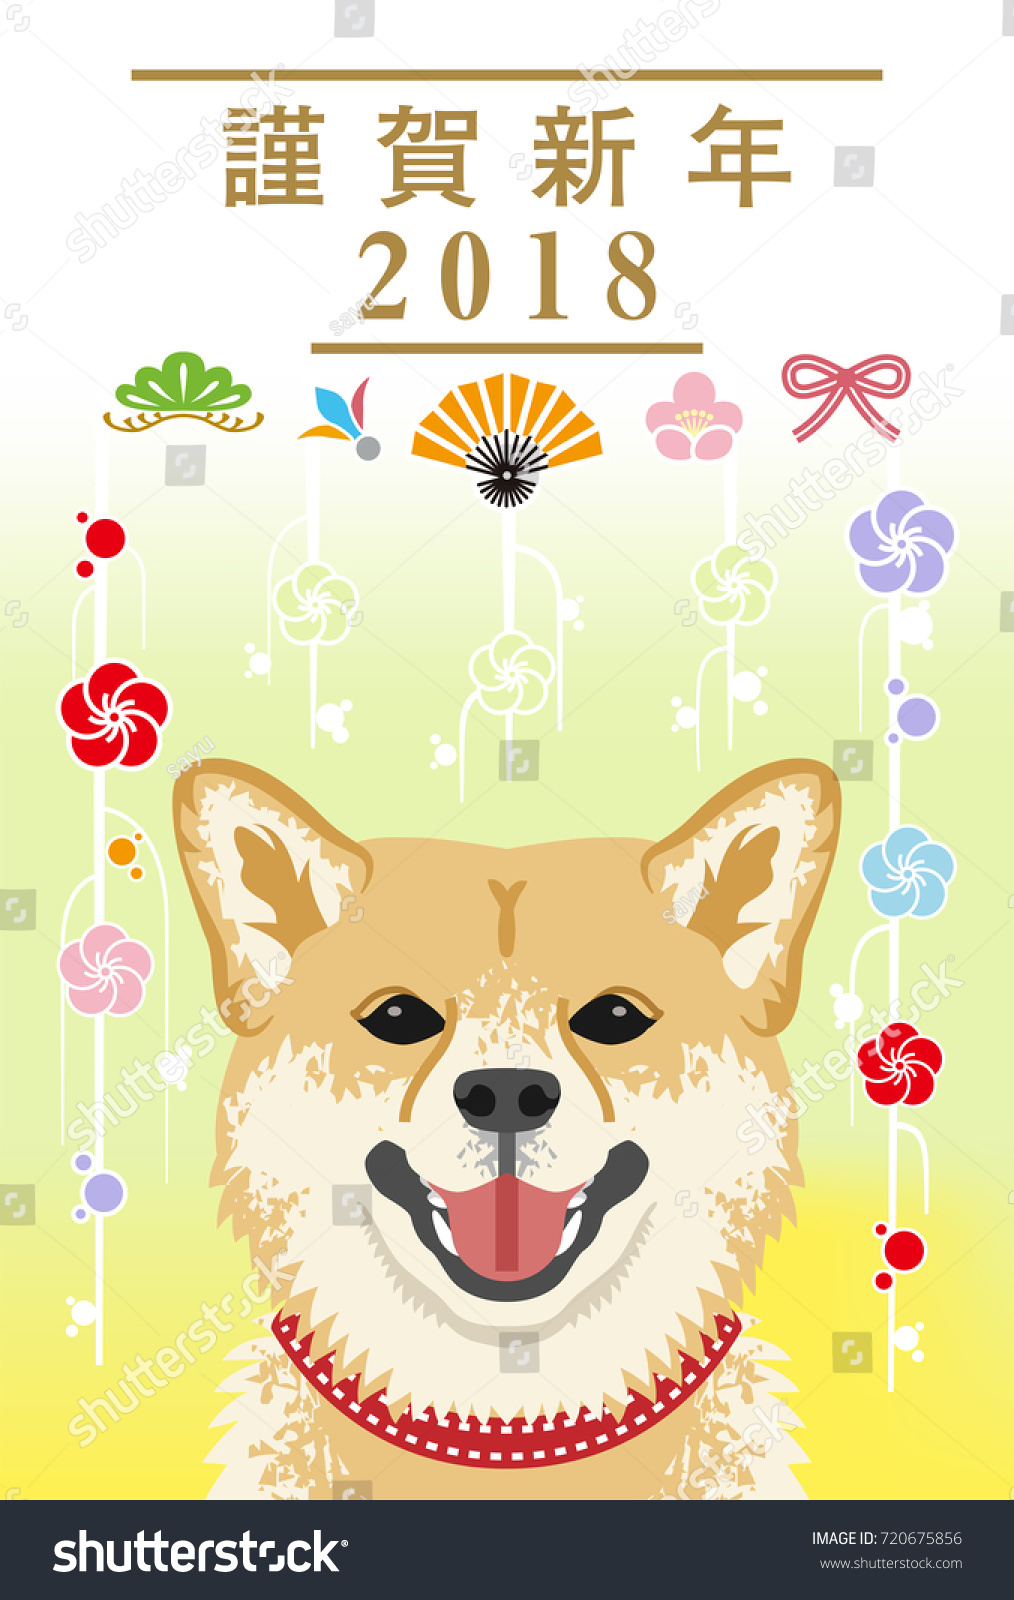 japanese new year card 2018 shiba inu face close up front view japanese